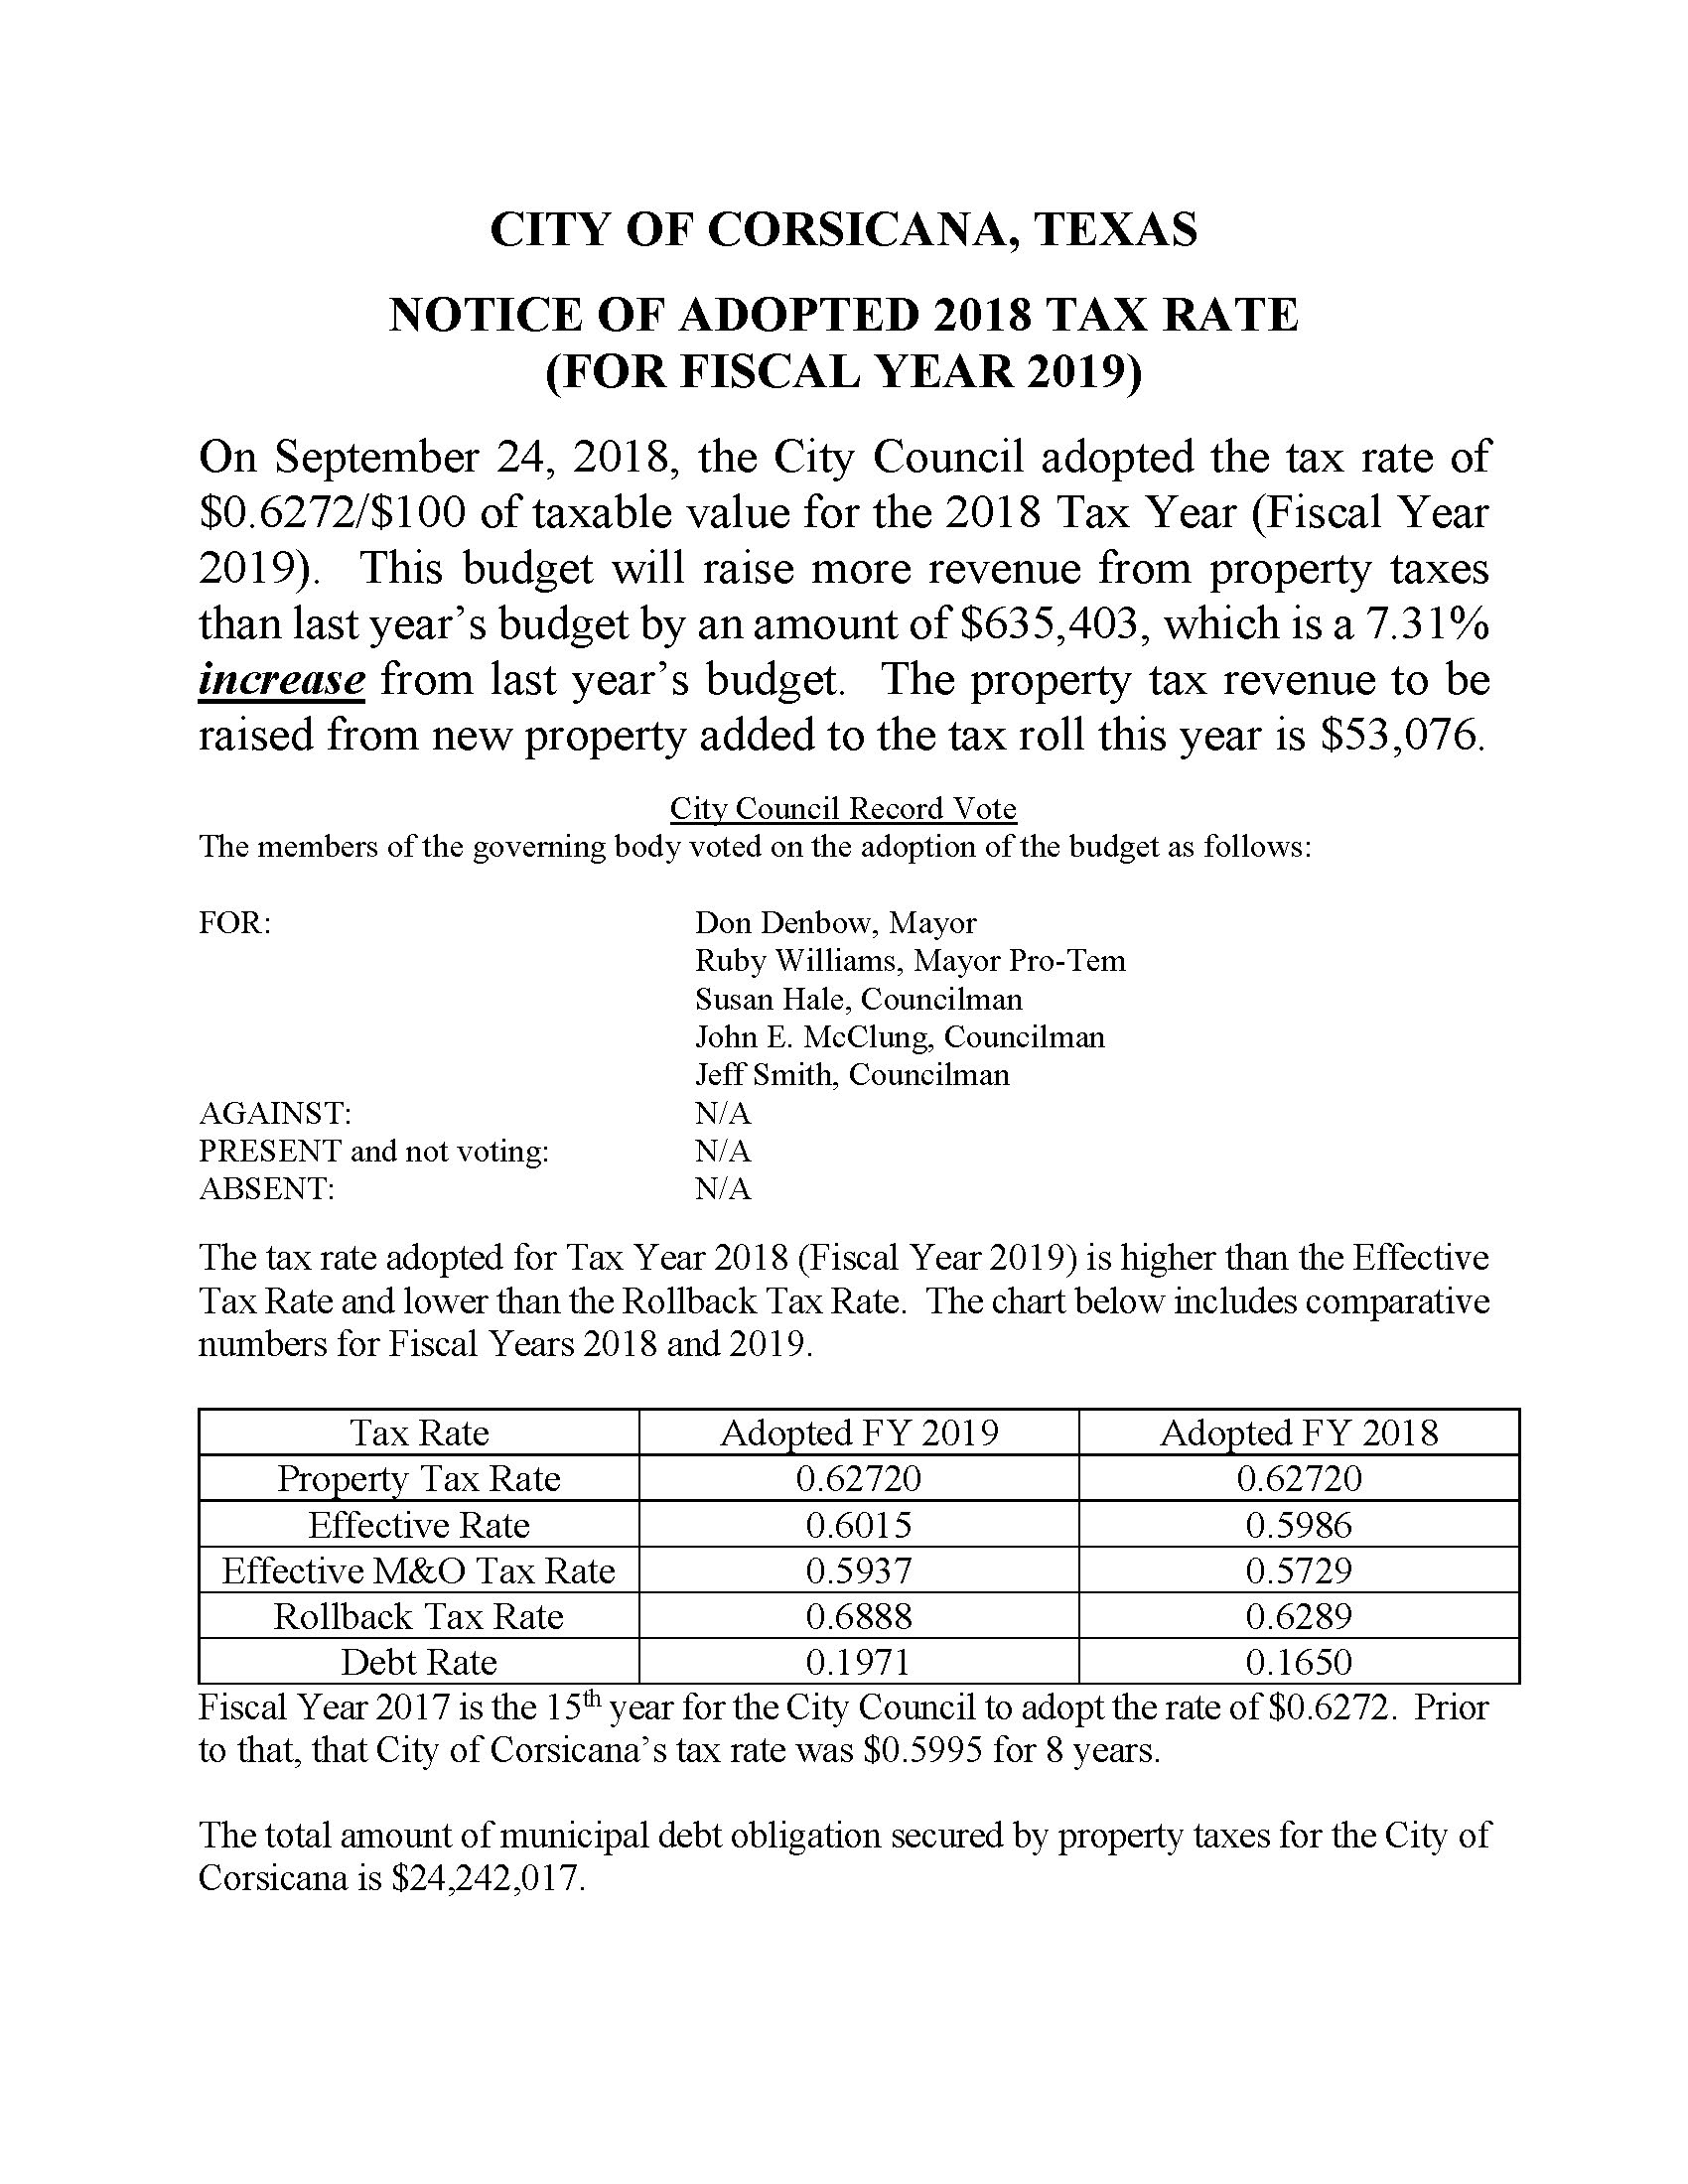 2018 Notice of Adopted Tax Rate with Record of Vote as Required by Local Government Code Chapter 102